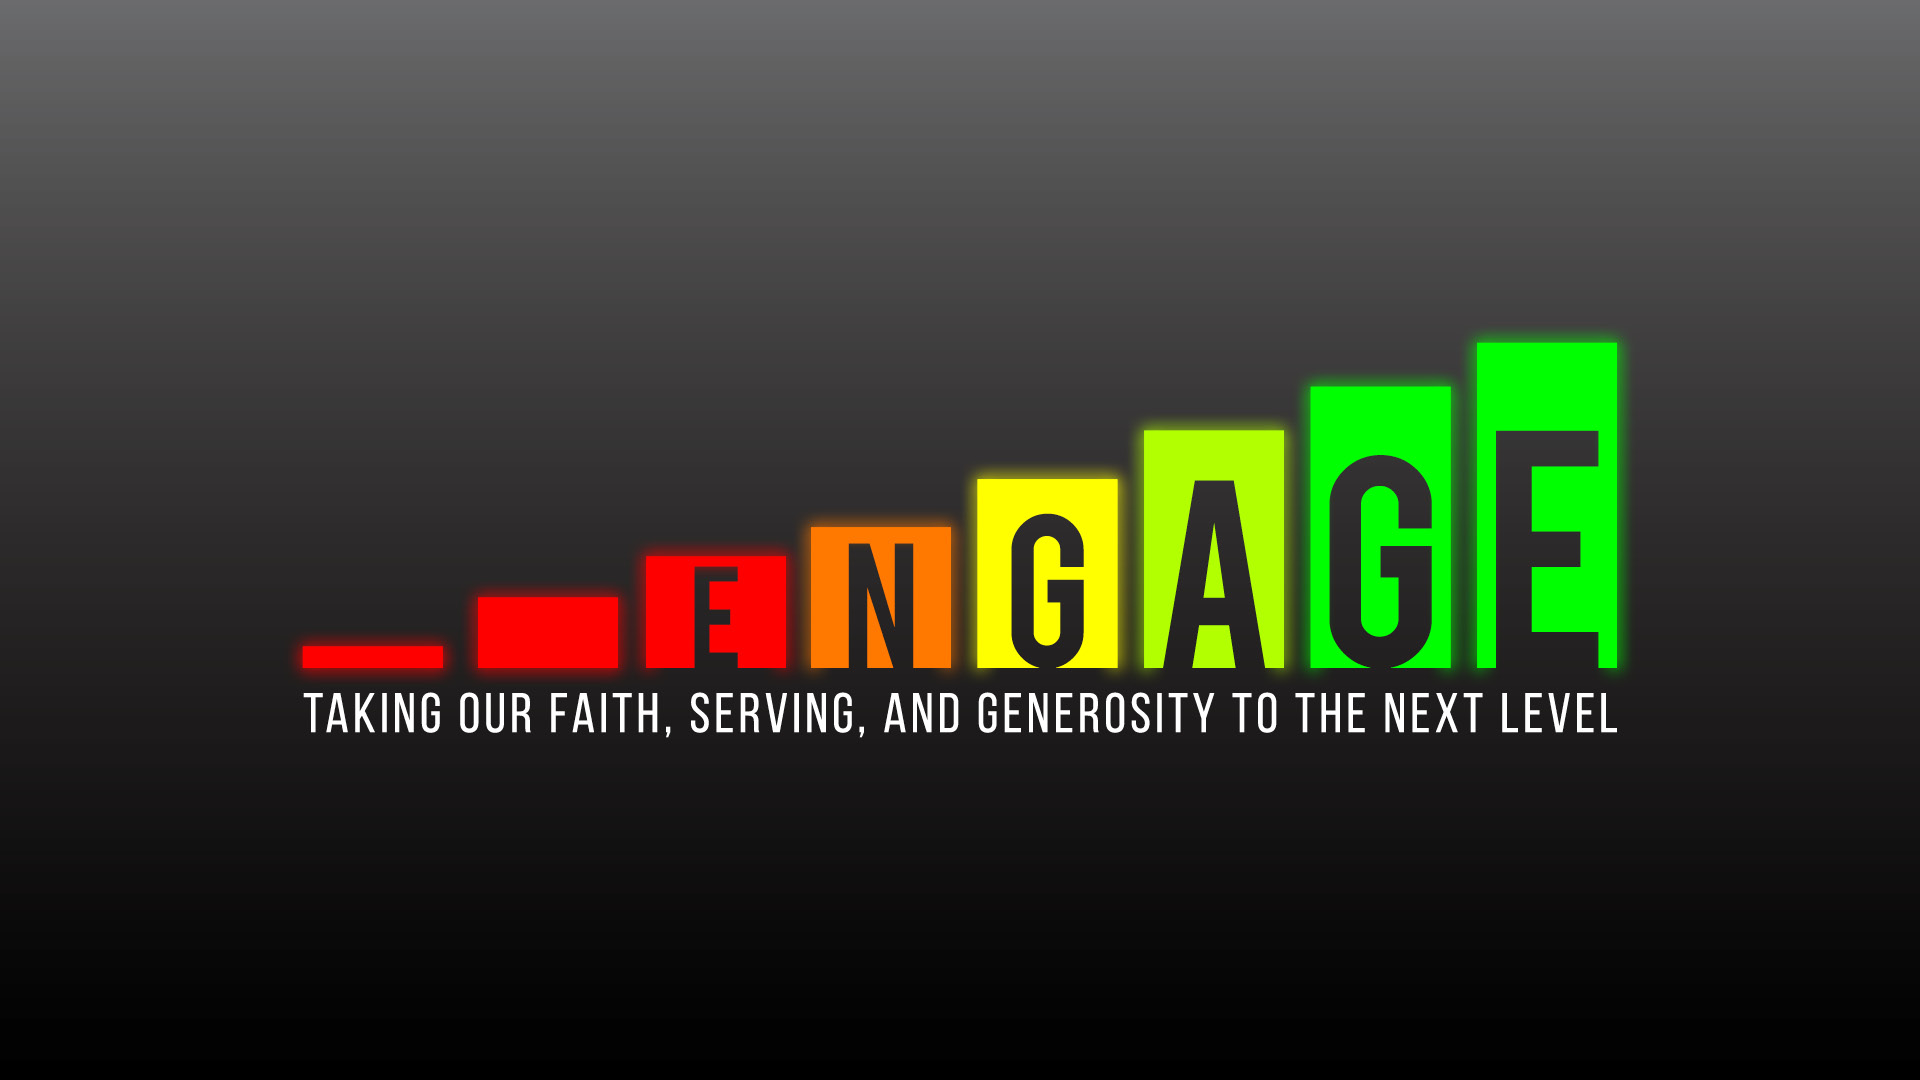 Engage - taking our faith, serving, and generosity to the next level